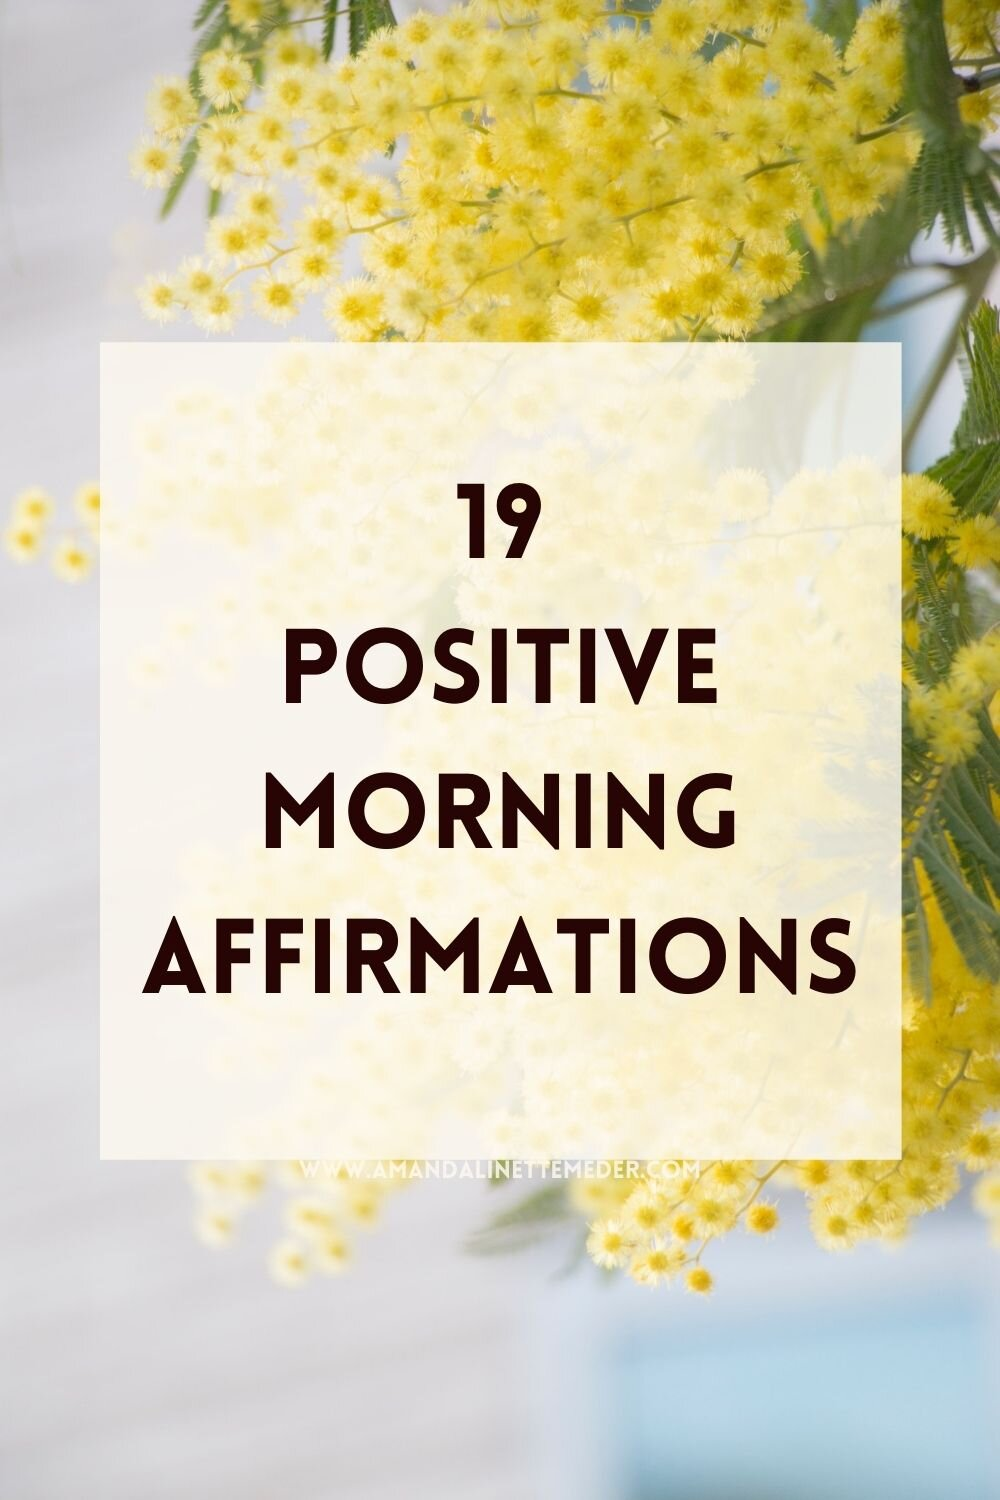 Photo of yellow flowers by TOMOKO UJI on Unsplash with text overlay 19 Positive Morning Affirmations